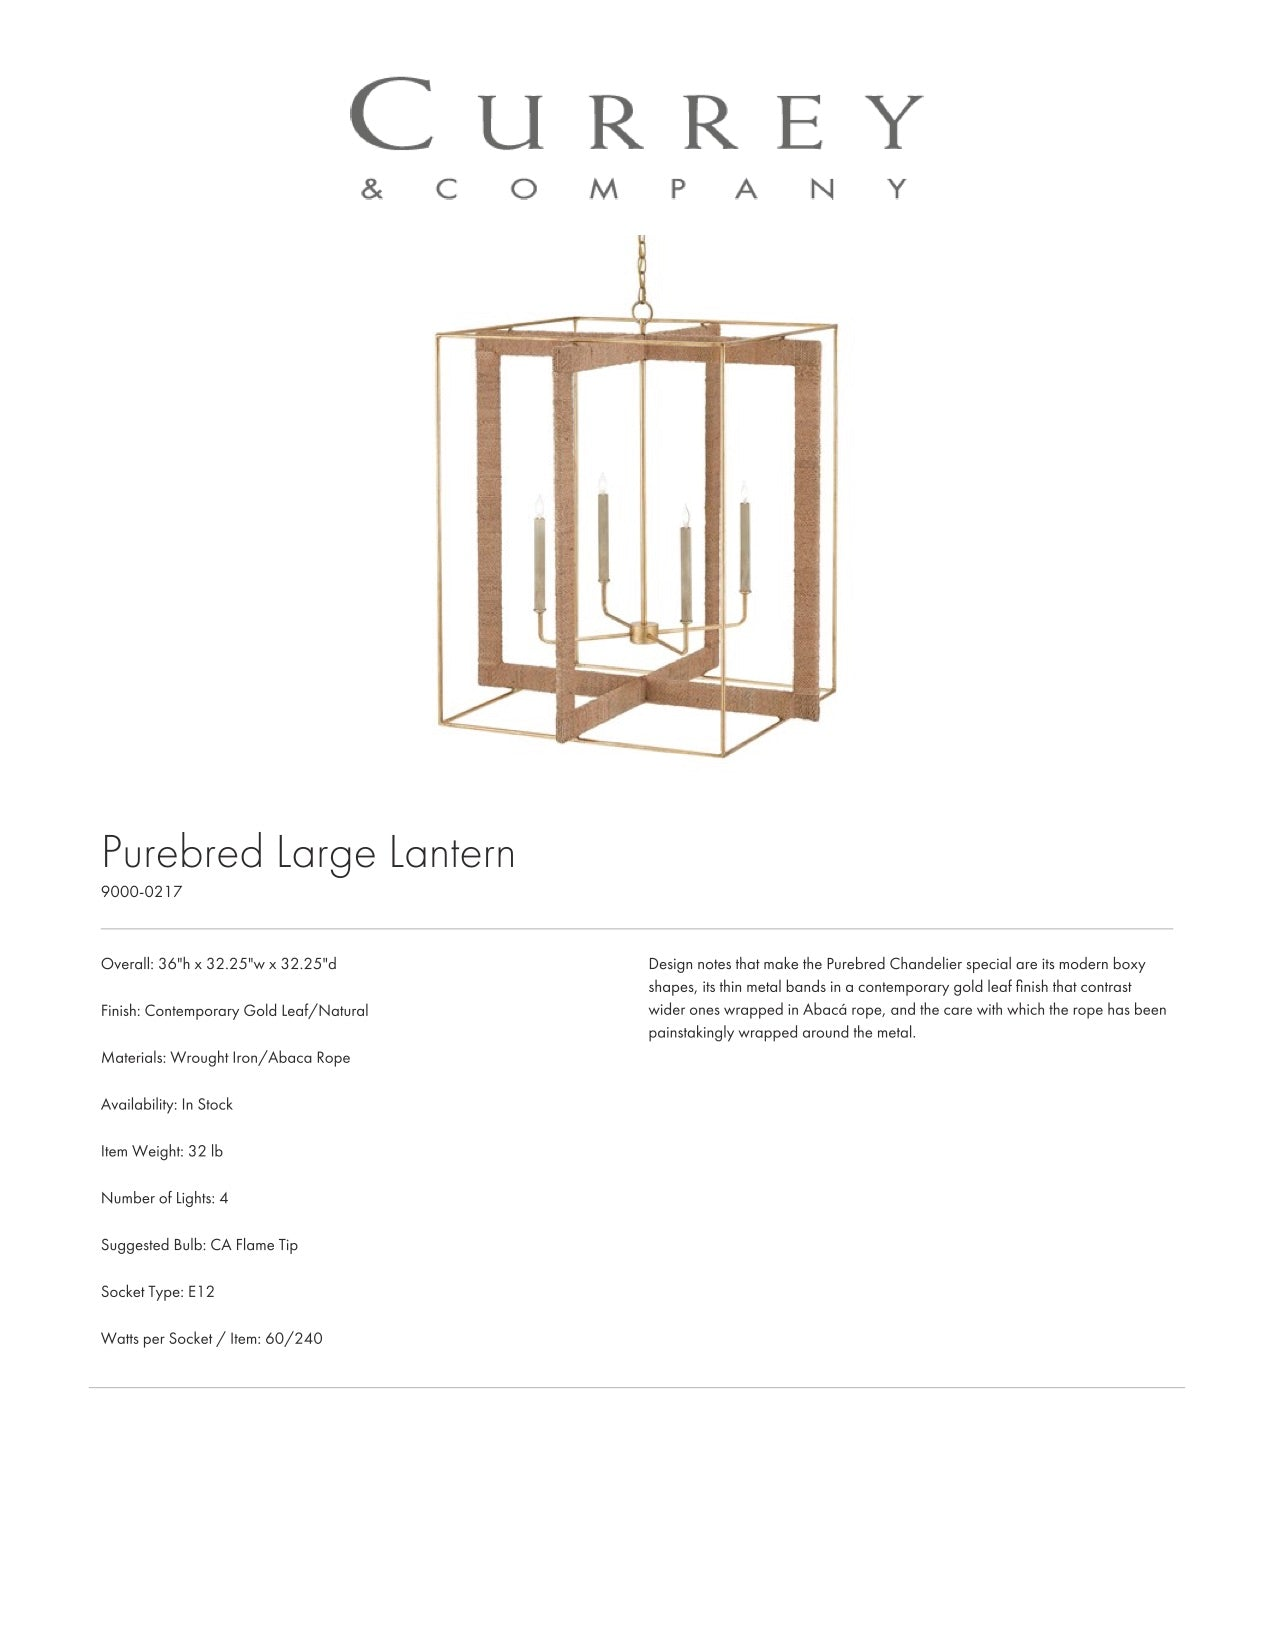 Currey & Company Purebred Chandelier Tearsheet